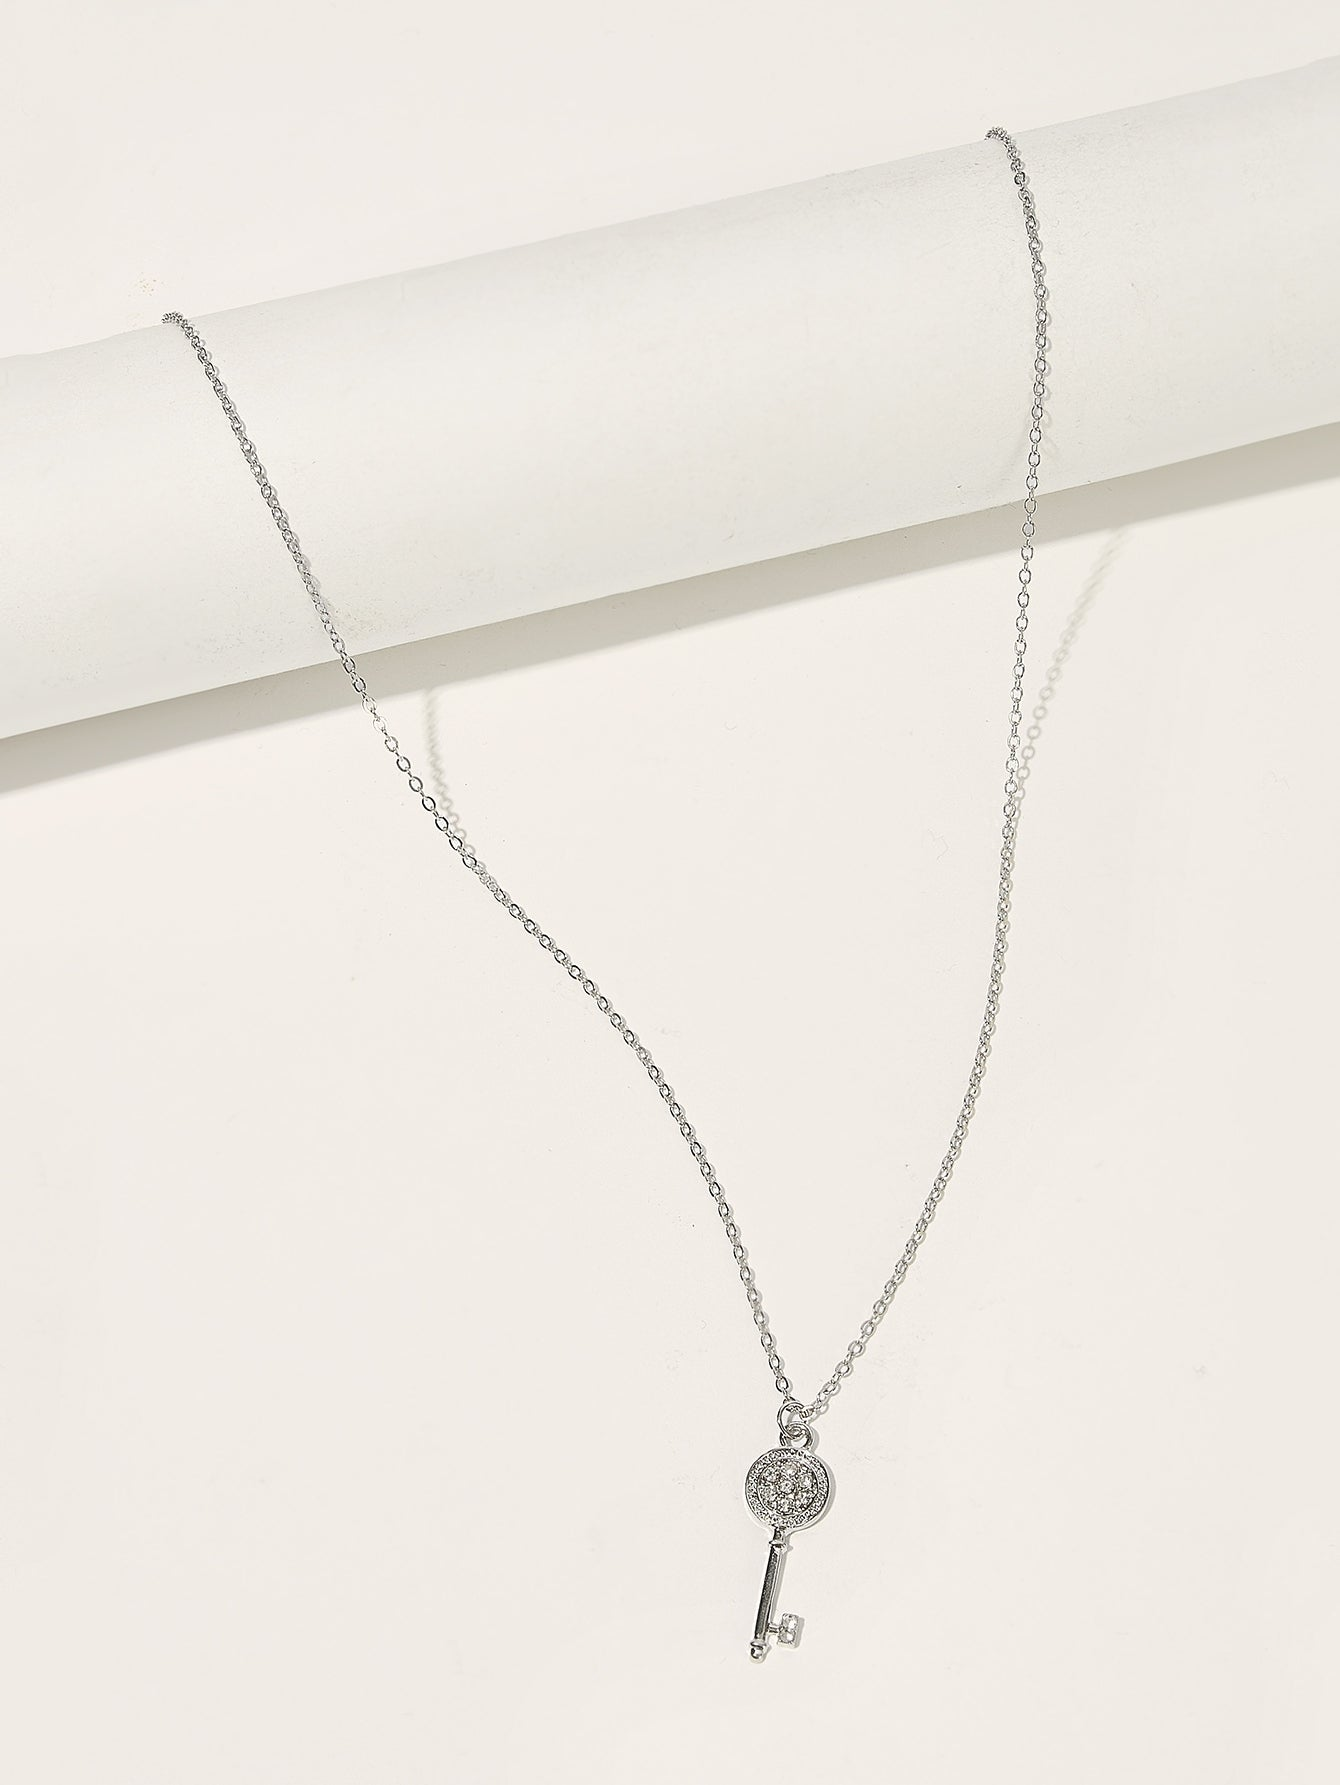 Grey Key Pendant With Gemstone 1pc Silver Chain Necklace